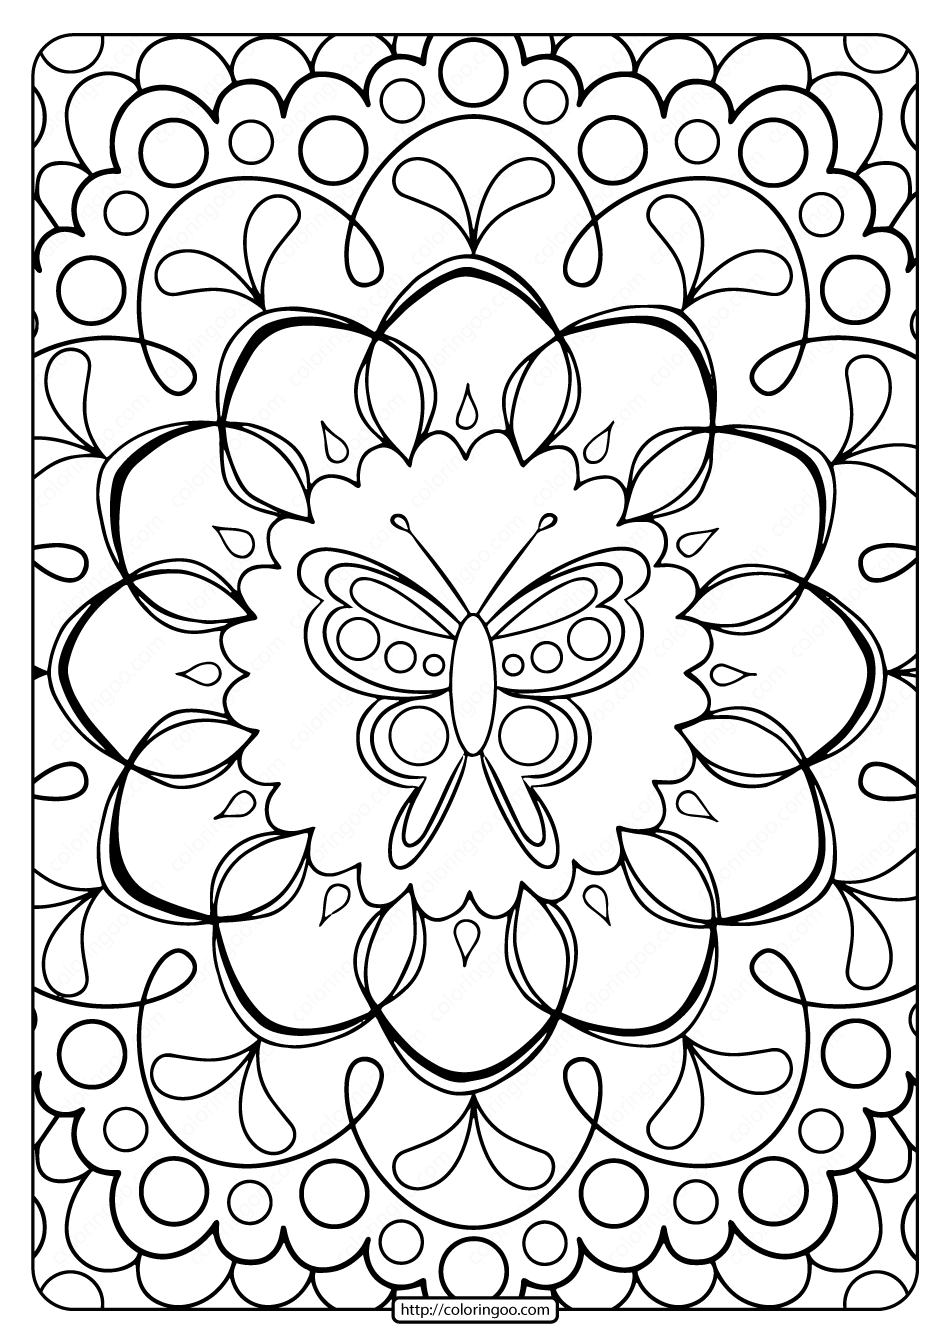 color in pictures 15 crazy busy coloring pages for adults free coloring pictures in color